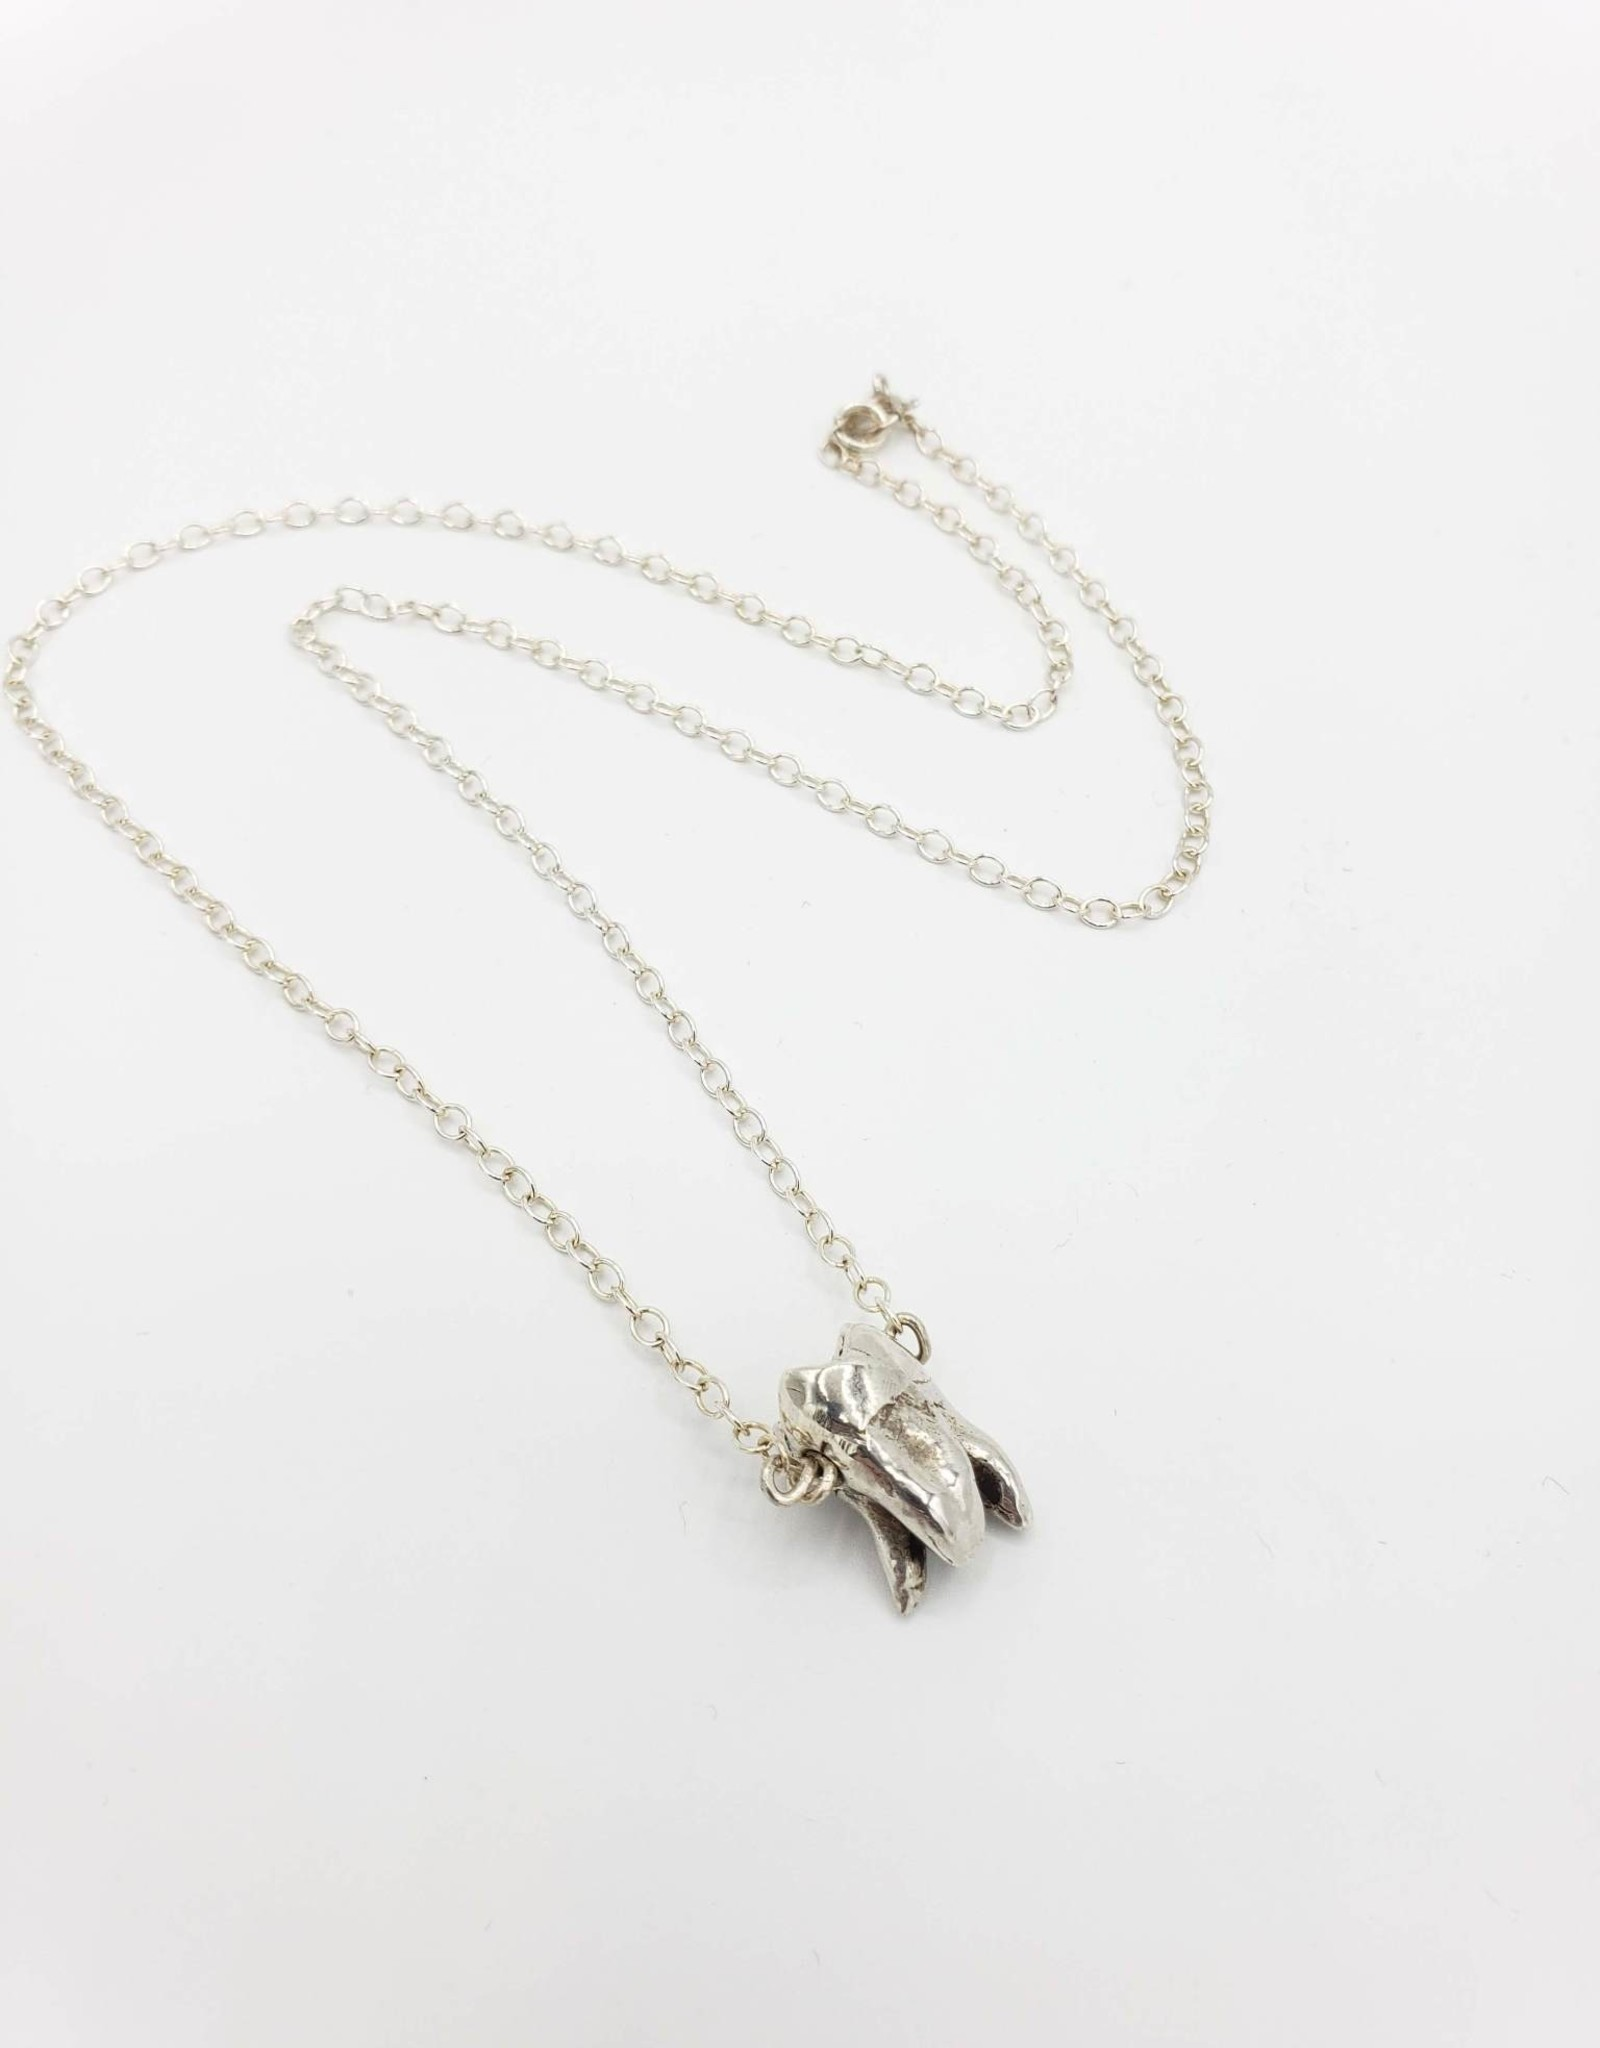 Redux Single Tooth Sterling Silver Necklace - triple split root, high polish sterling chain